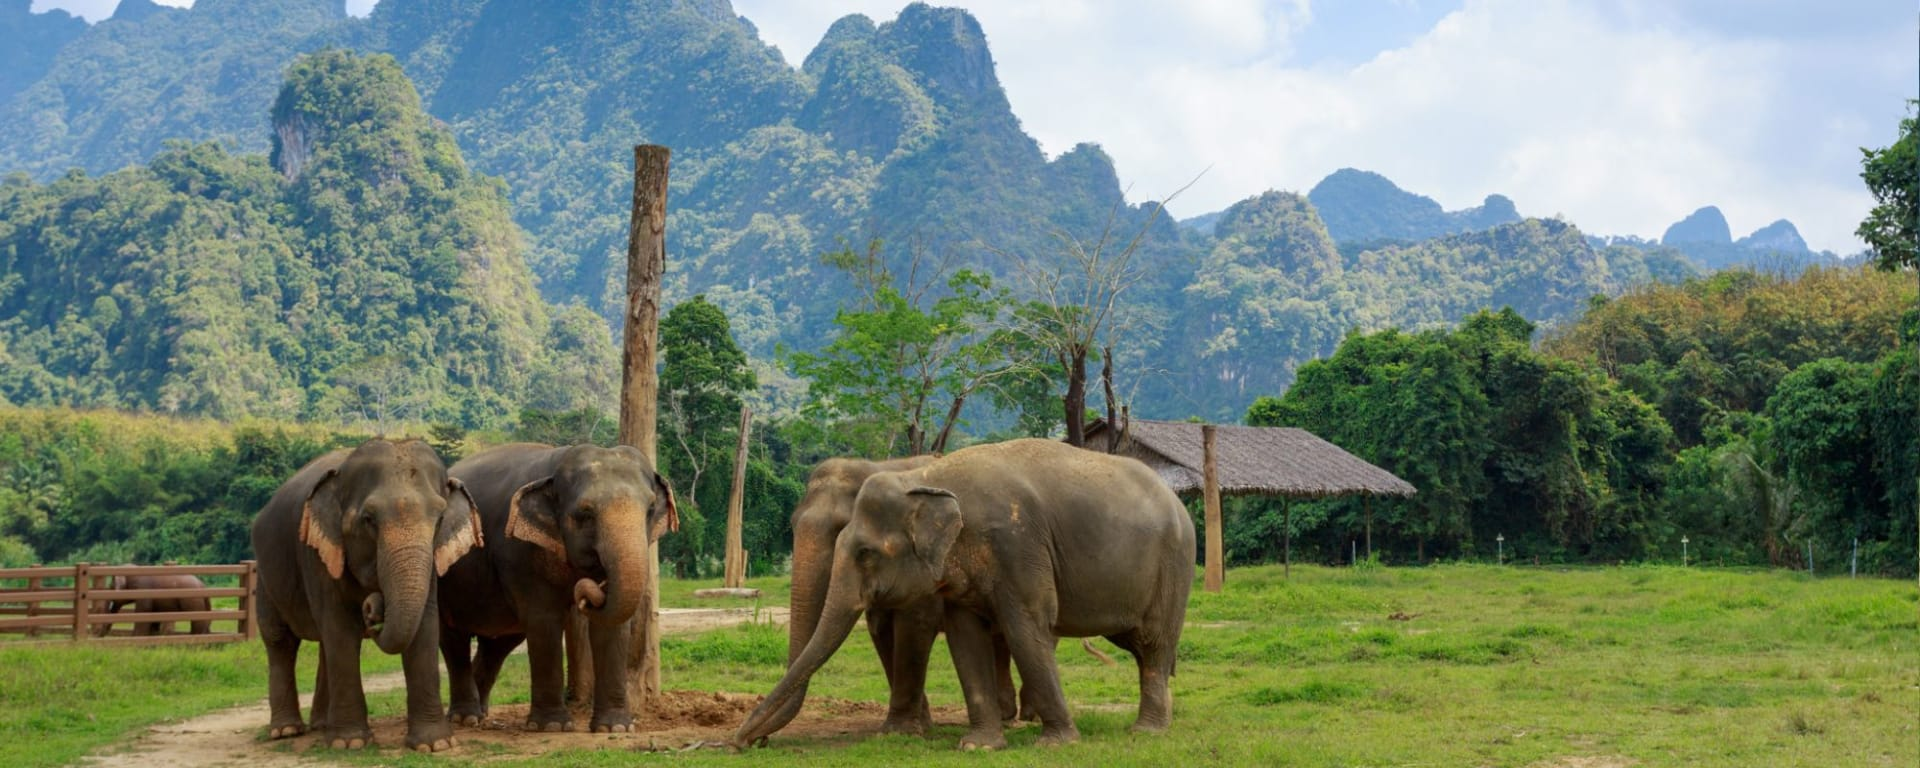 Elephant Hills - 3 Tage ab Phuket: Ethical Elephant Experience at Elephant Hills Luxury Tented Camp Khao Sok National Park Thailand - no Elephant Riding or Trekking